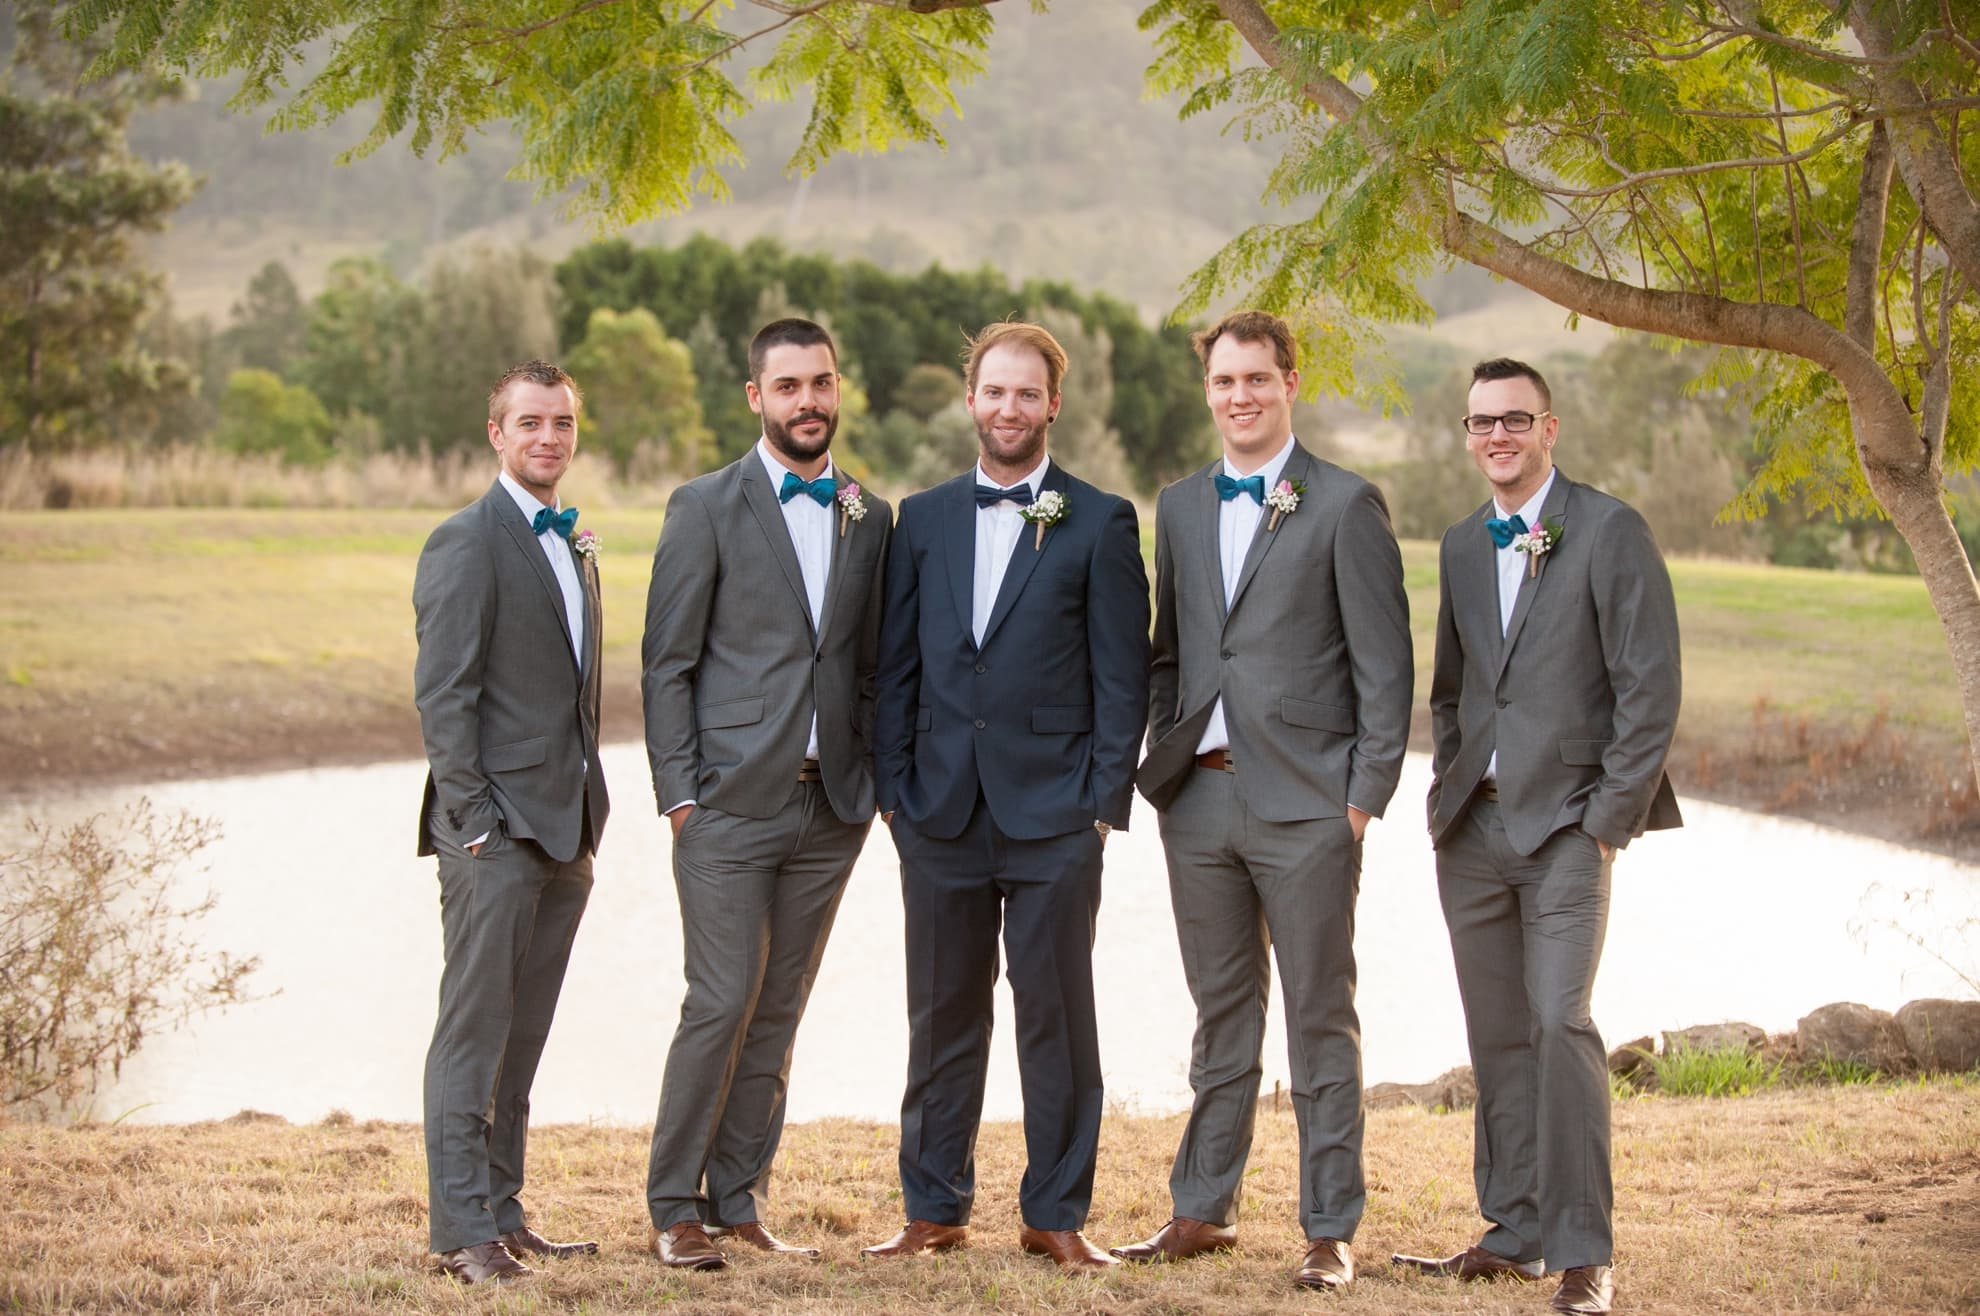 groomsmen-and-groom-with-hands-in-pockets-looking-at-the-camera